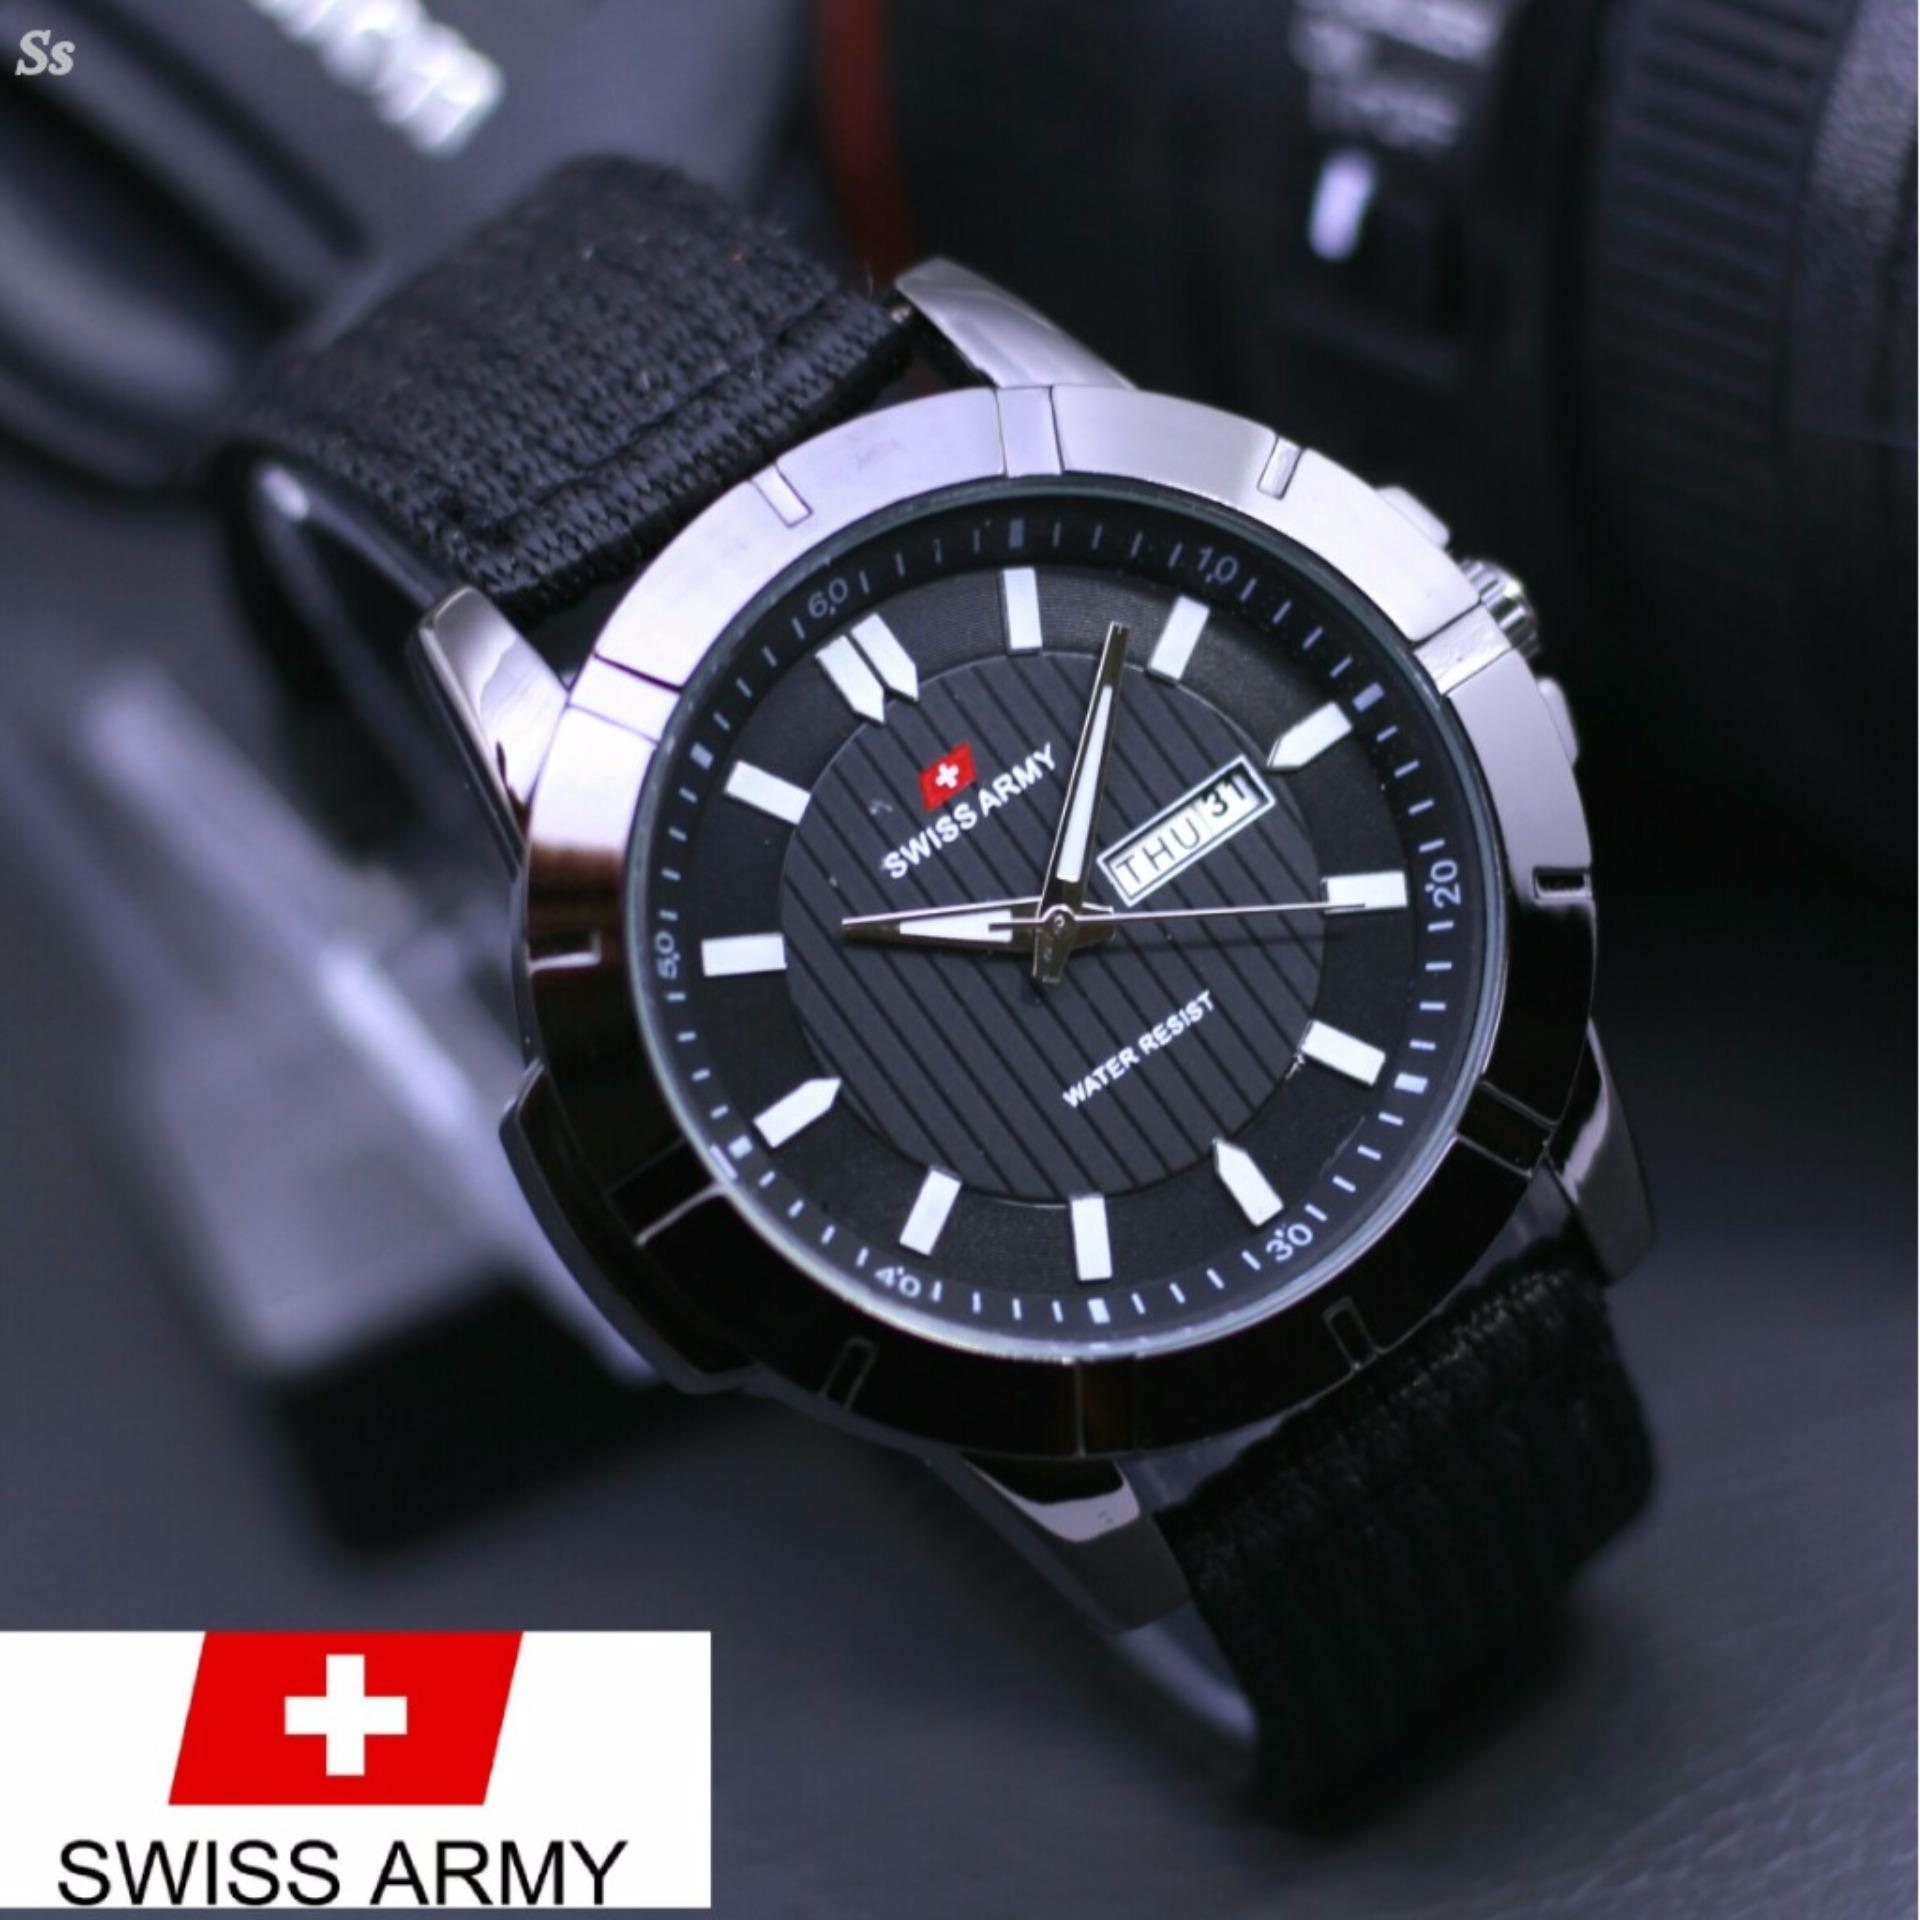 Jeep Man Jam Tangan Pria Casual Fashion Formal Chrono Aktif Swiss Army Infantry Full Set Hitam